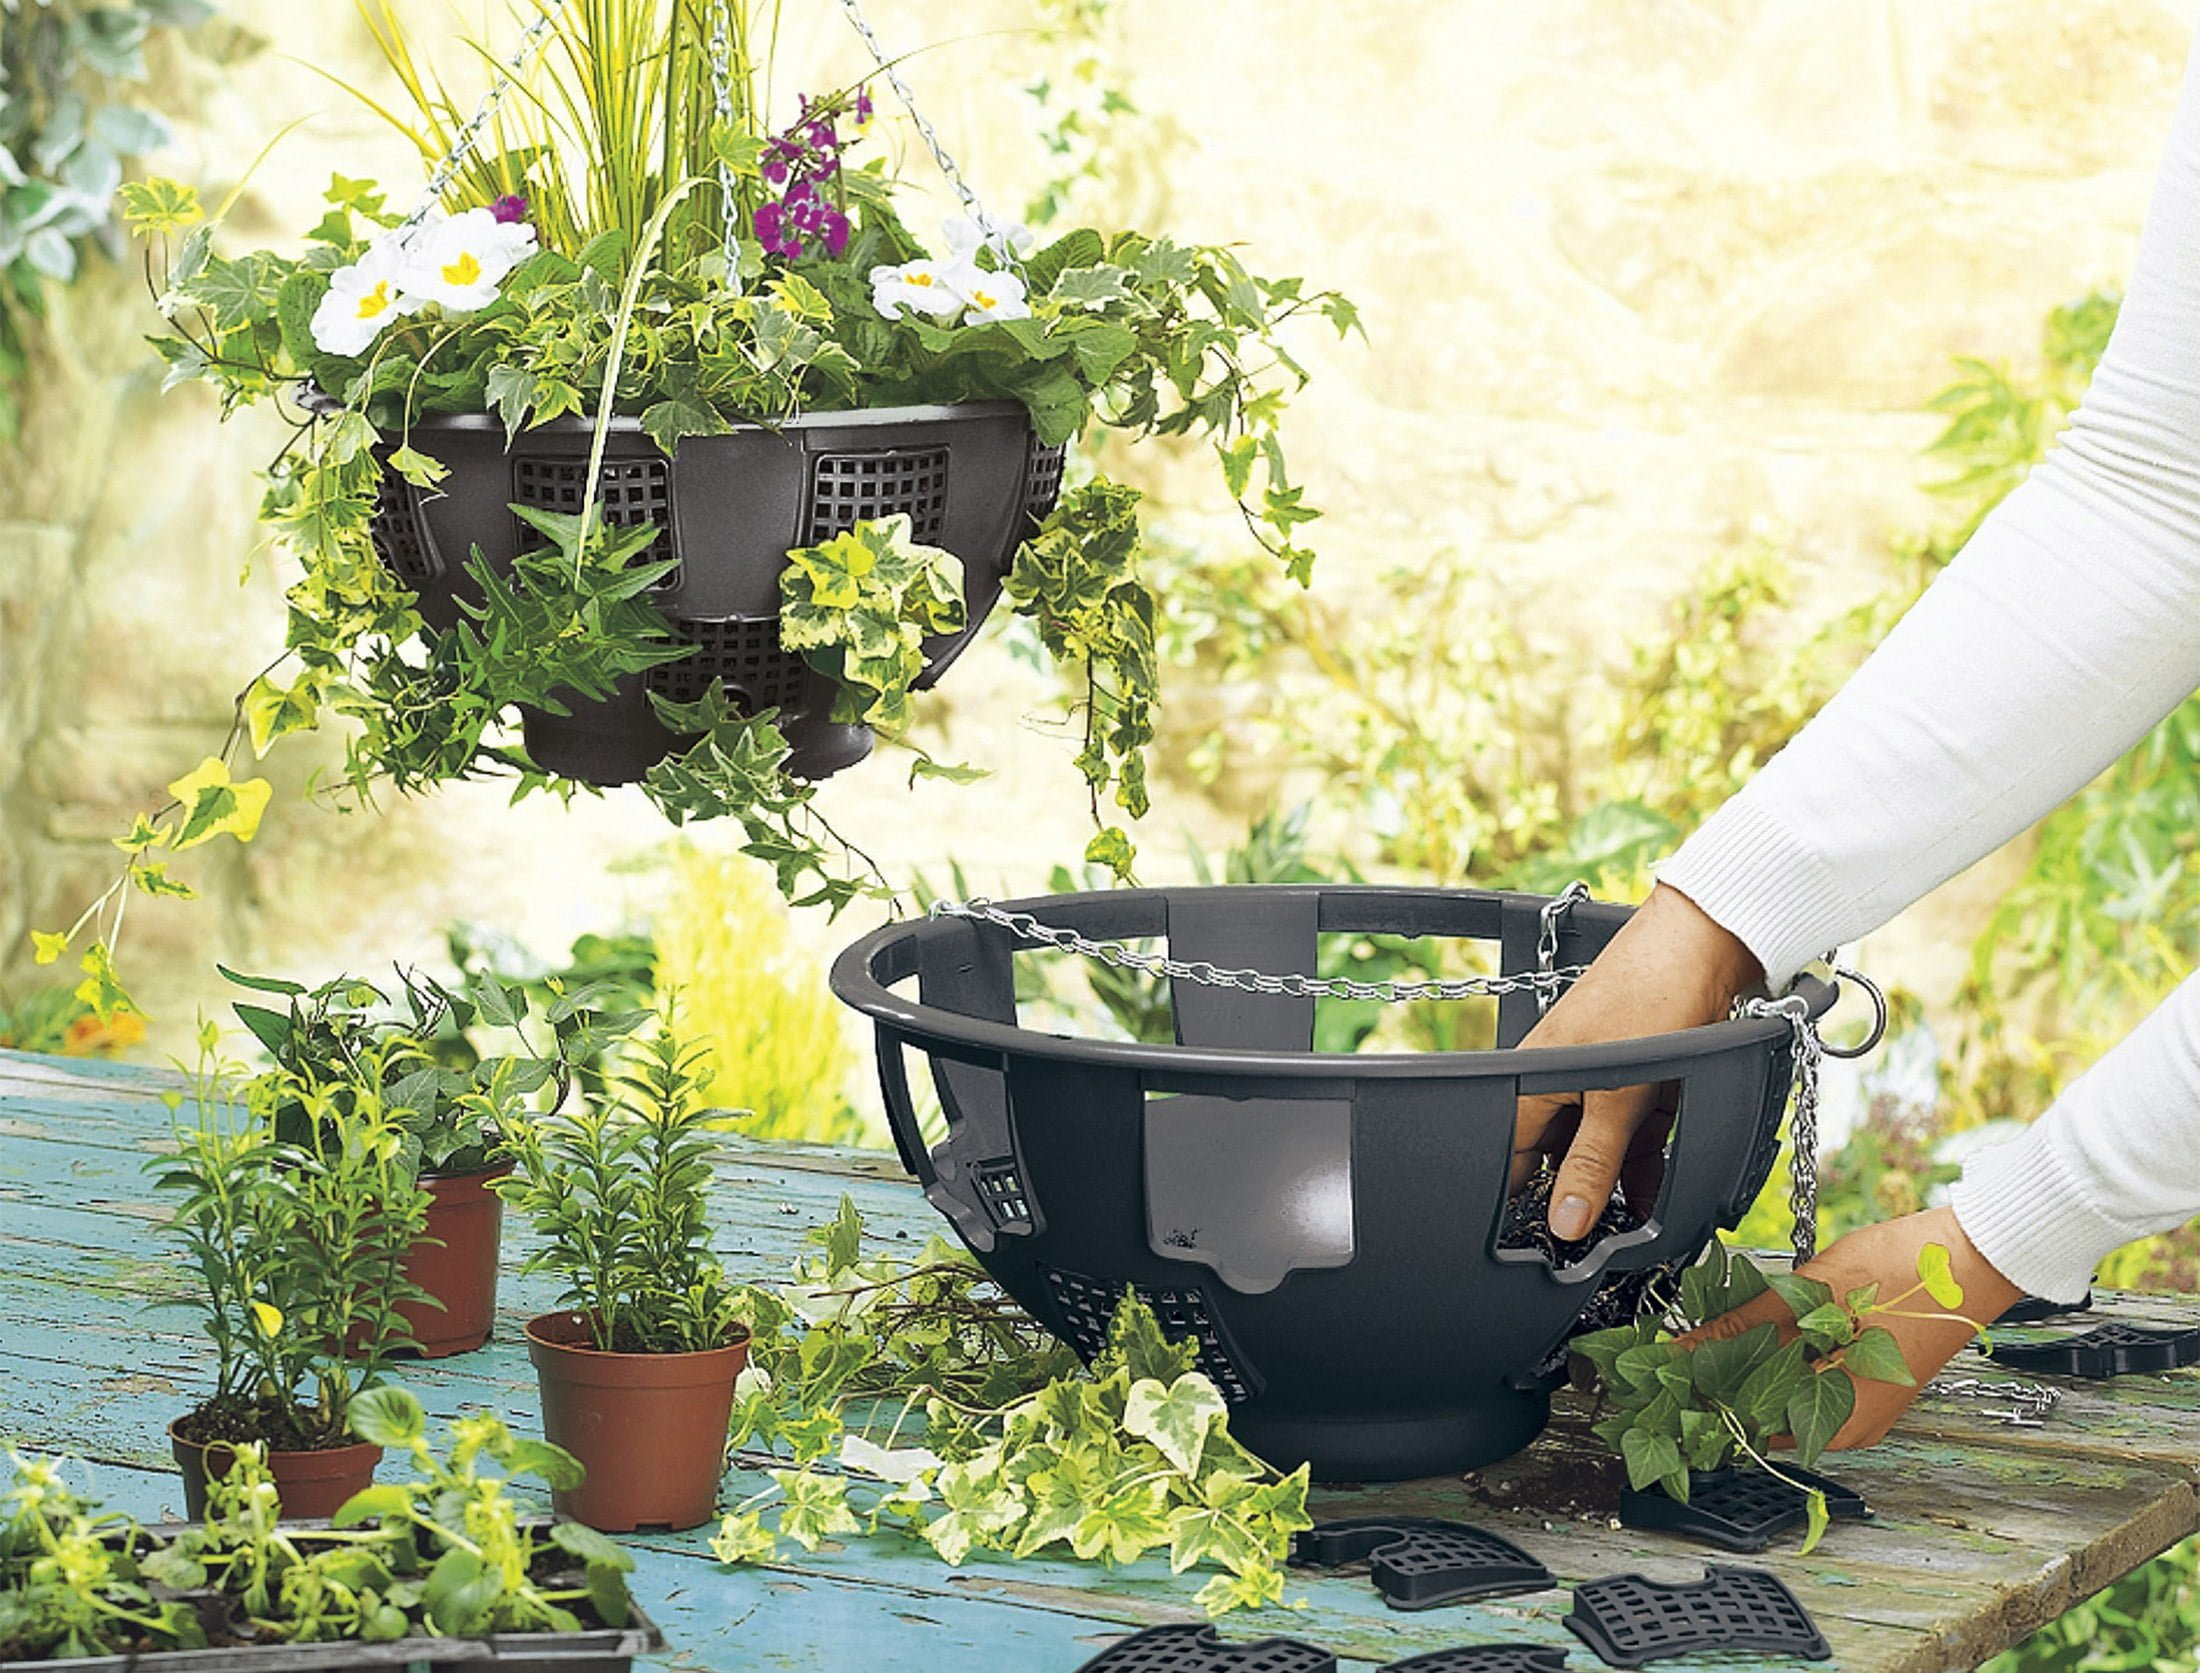 What's the secret of brilliant hanging baskets?